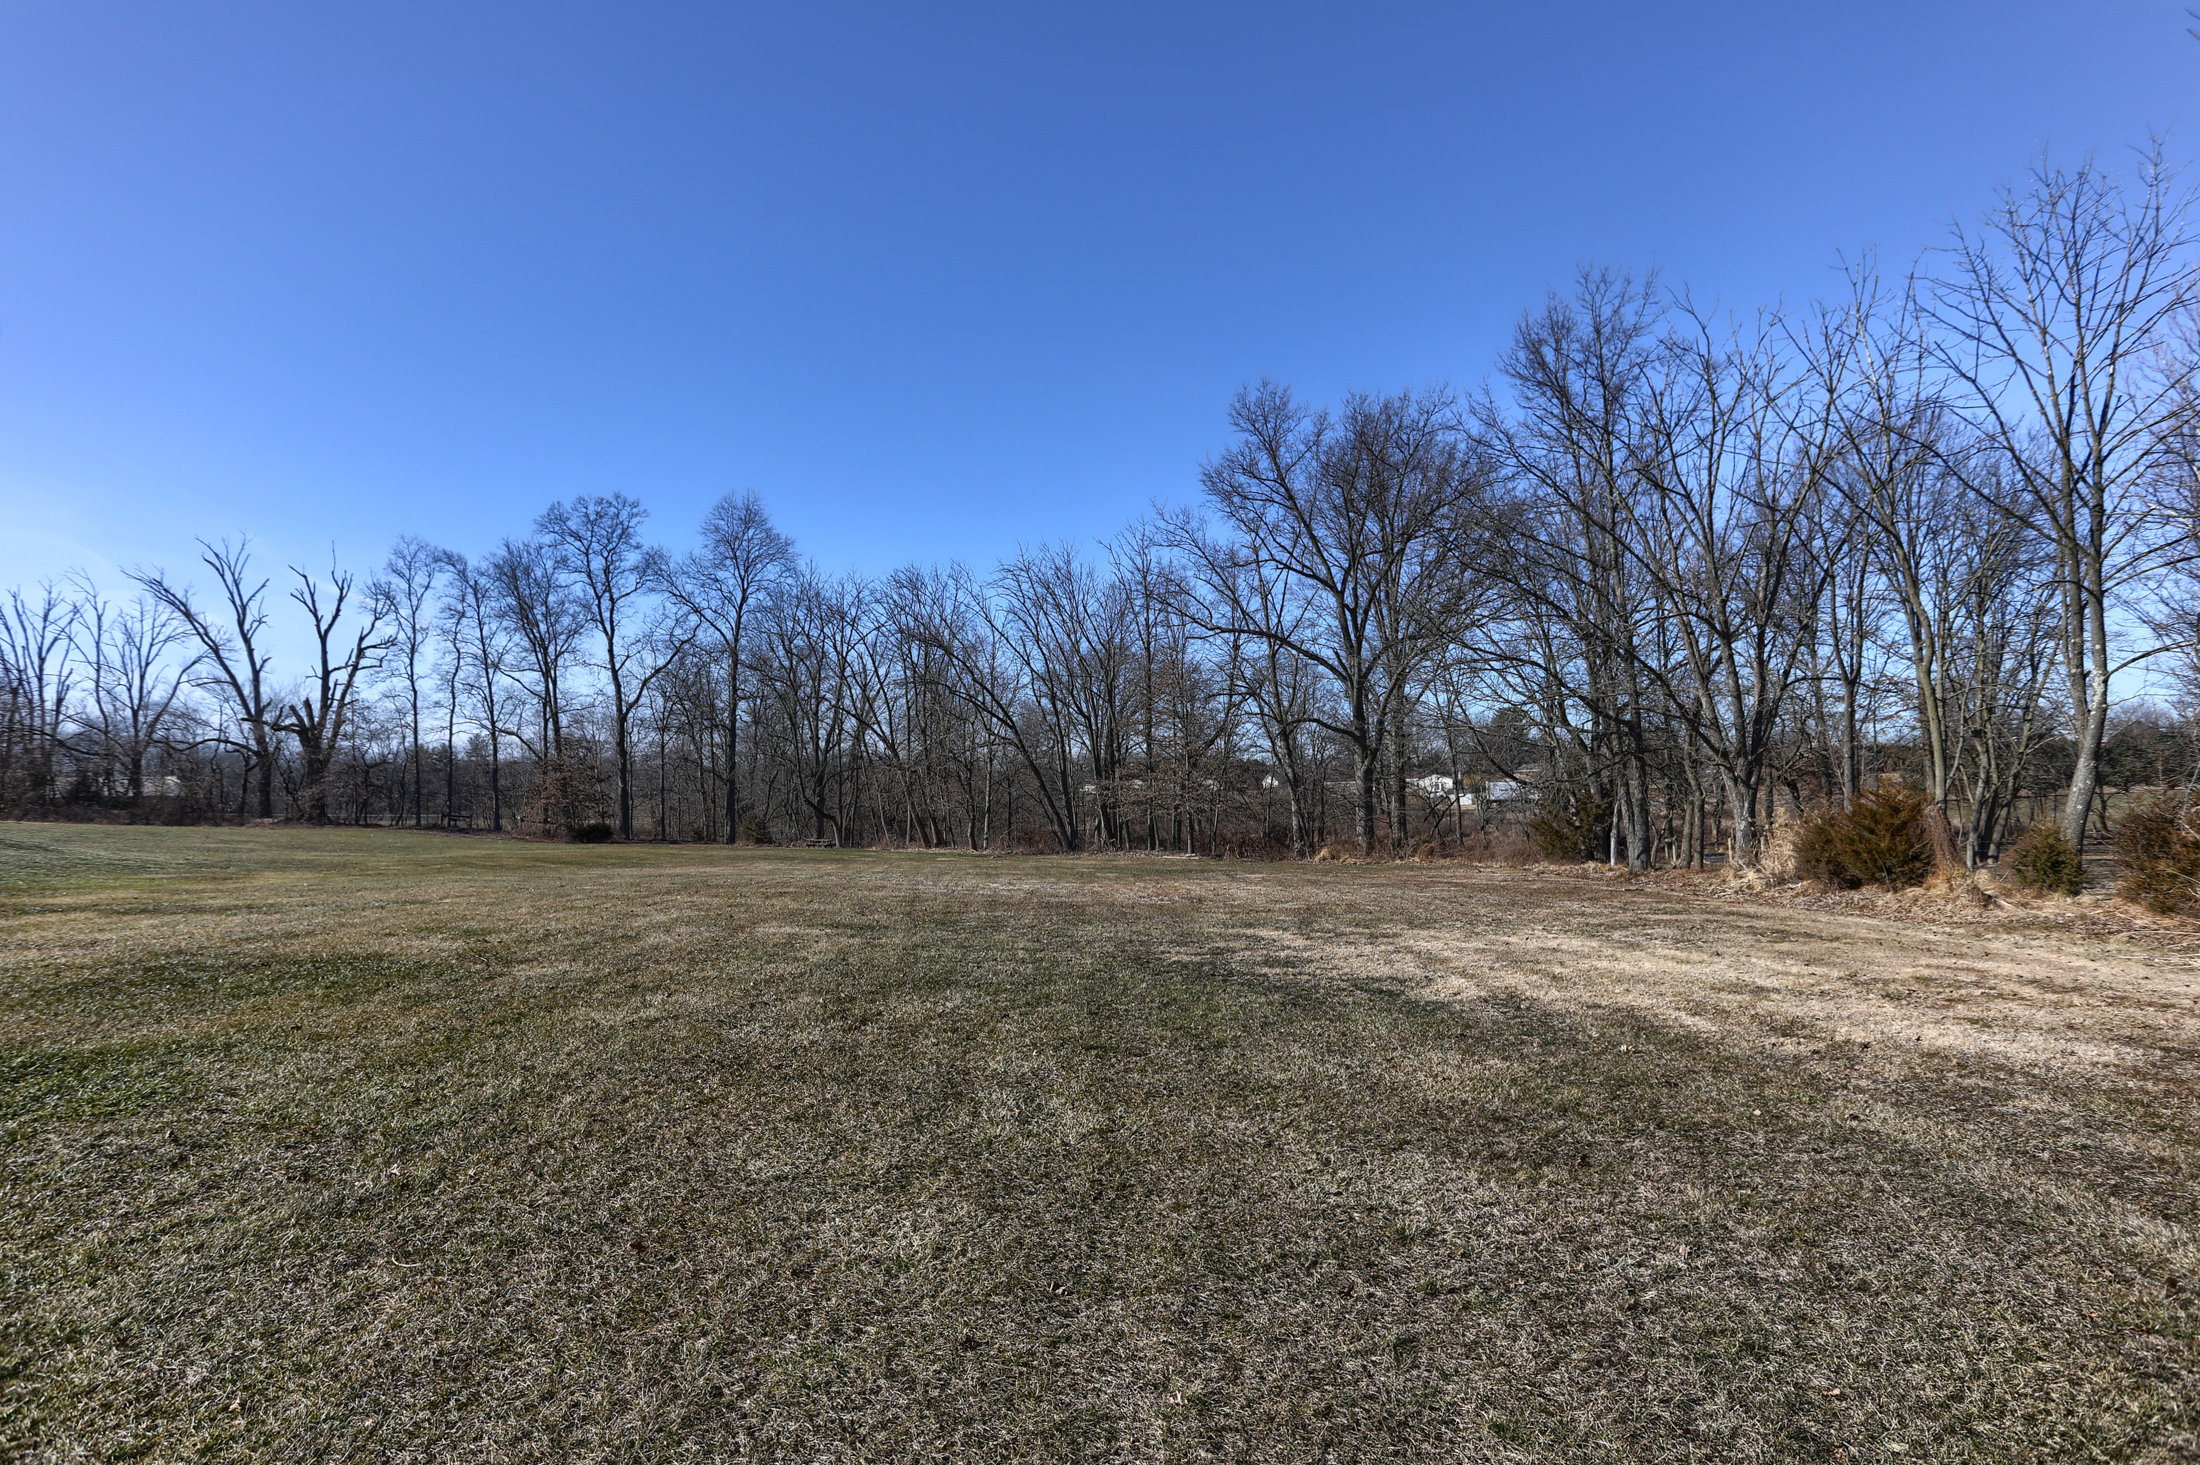 26 W. Strack Drive - view of tree area and crick